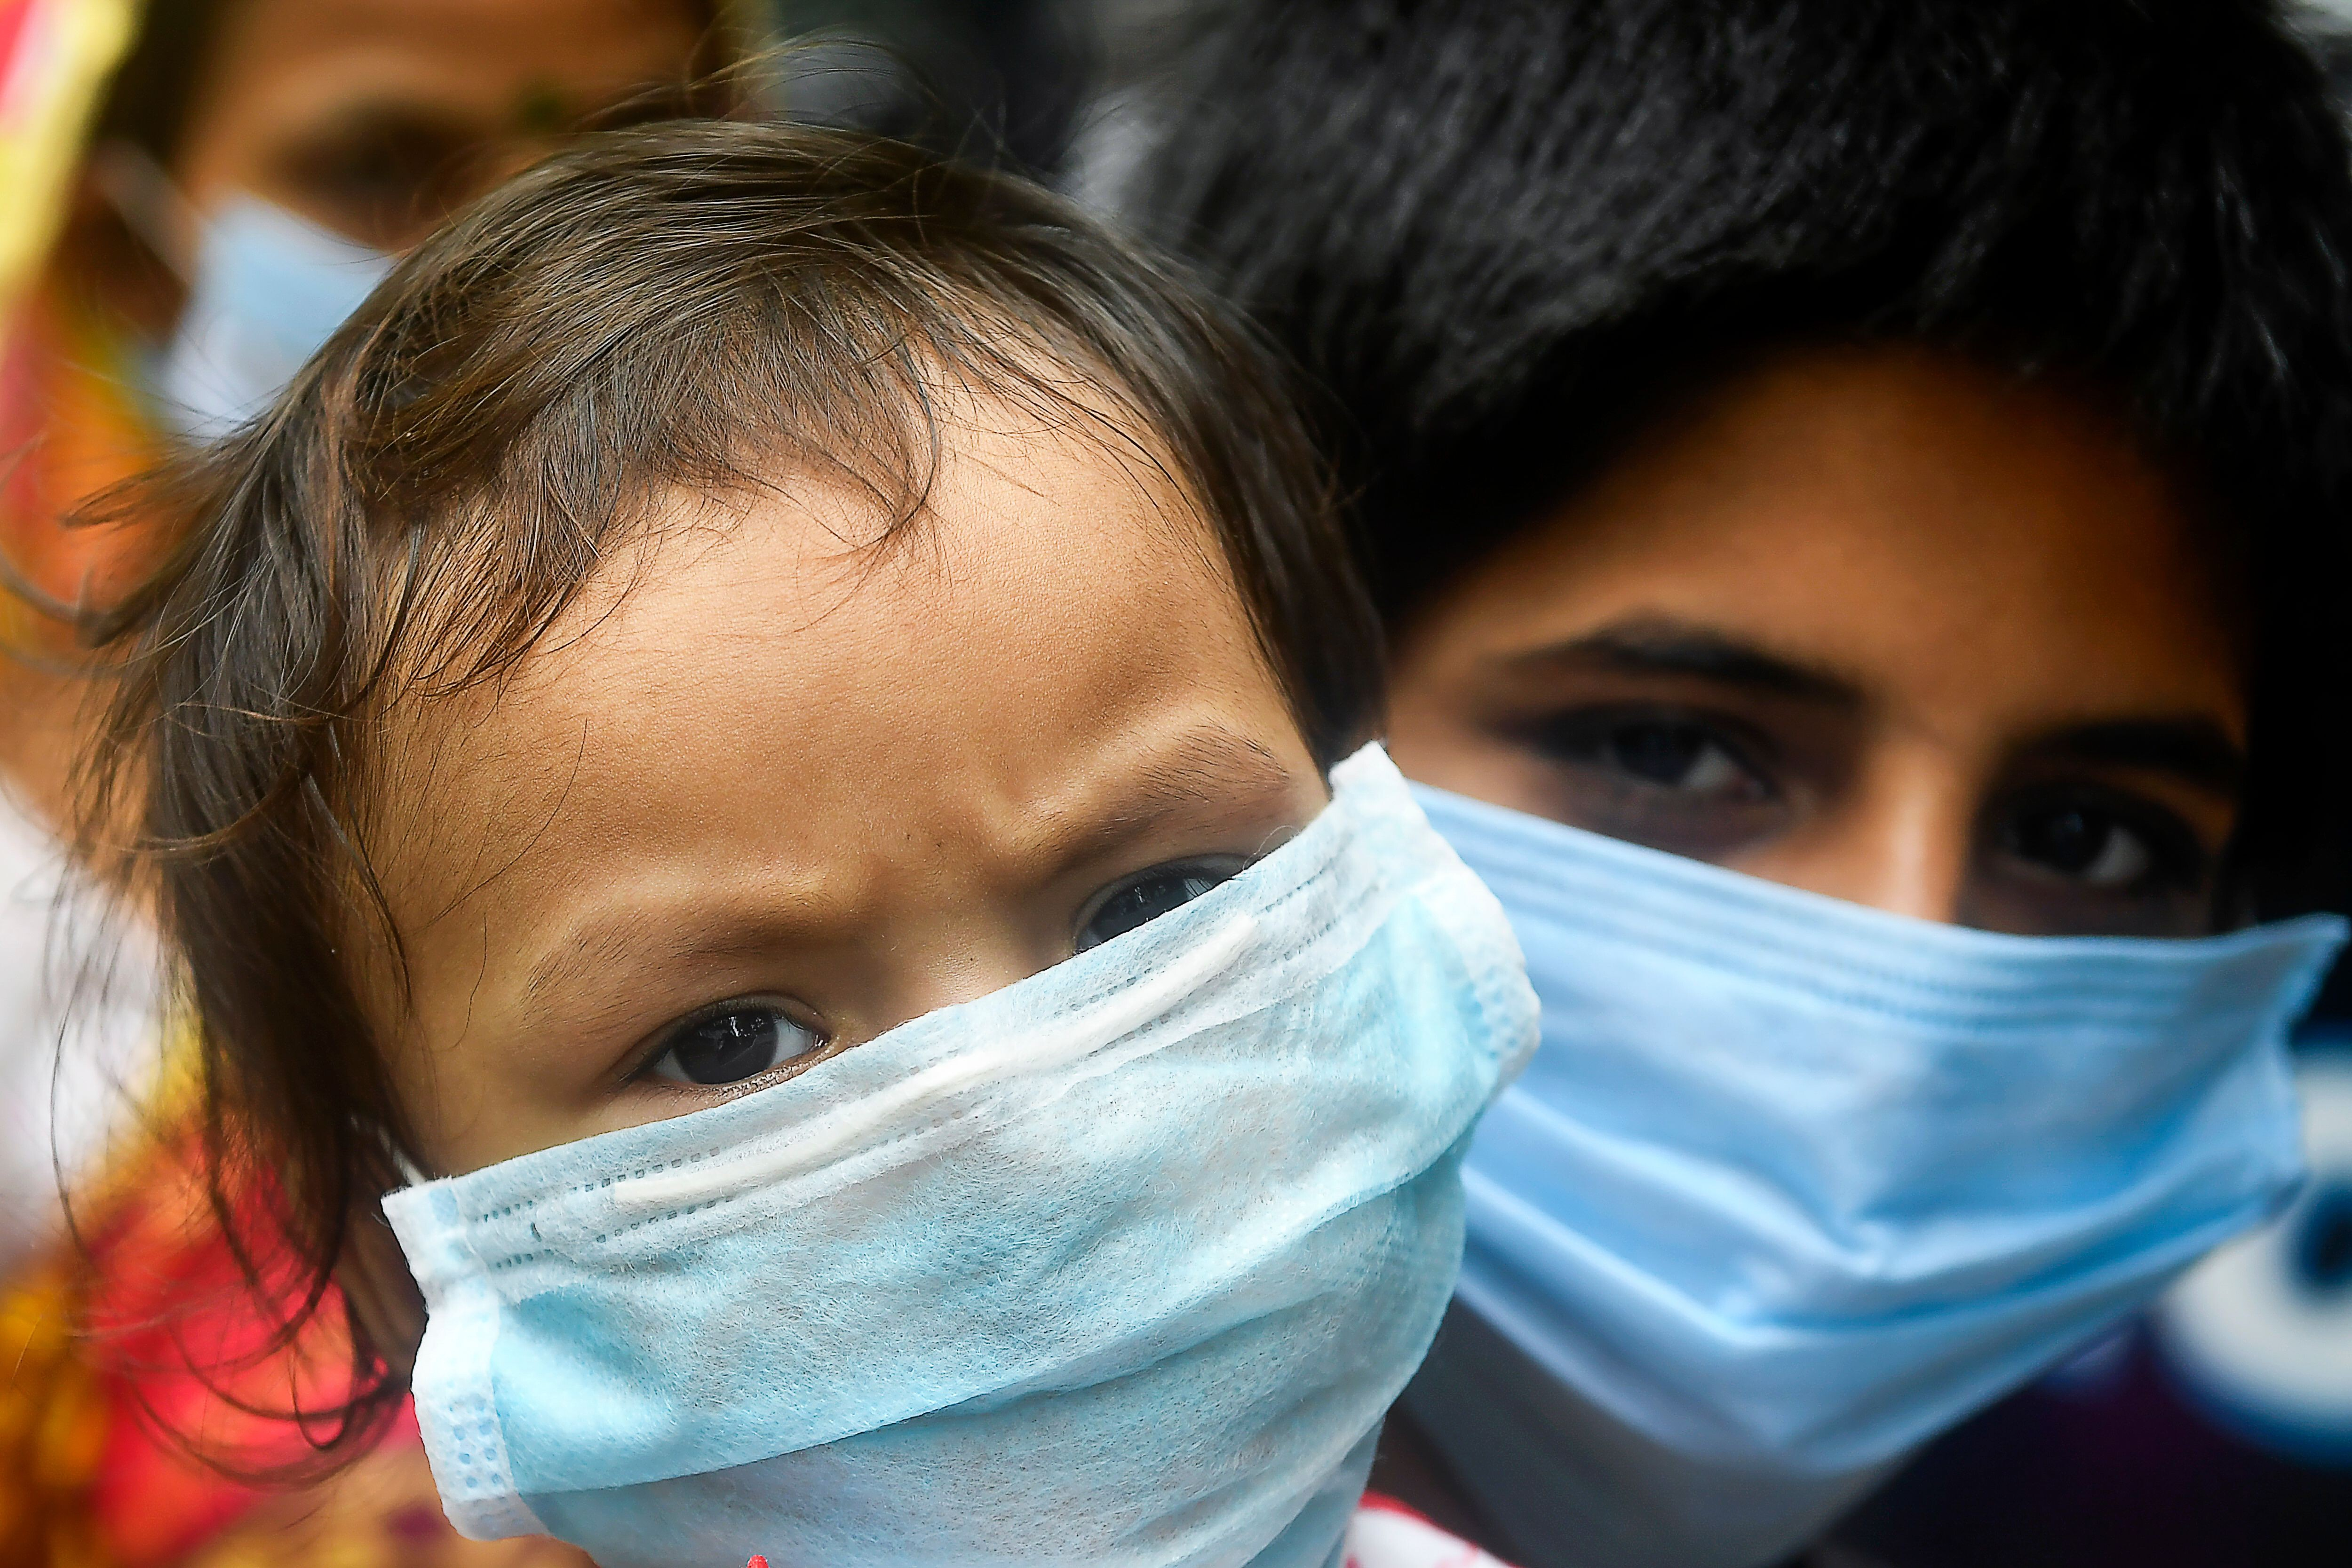 The pandemic has pushed children's mental health and access to care to a 'crisis point'